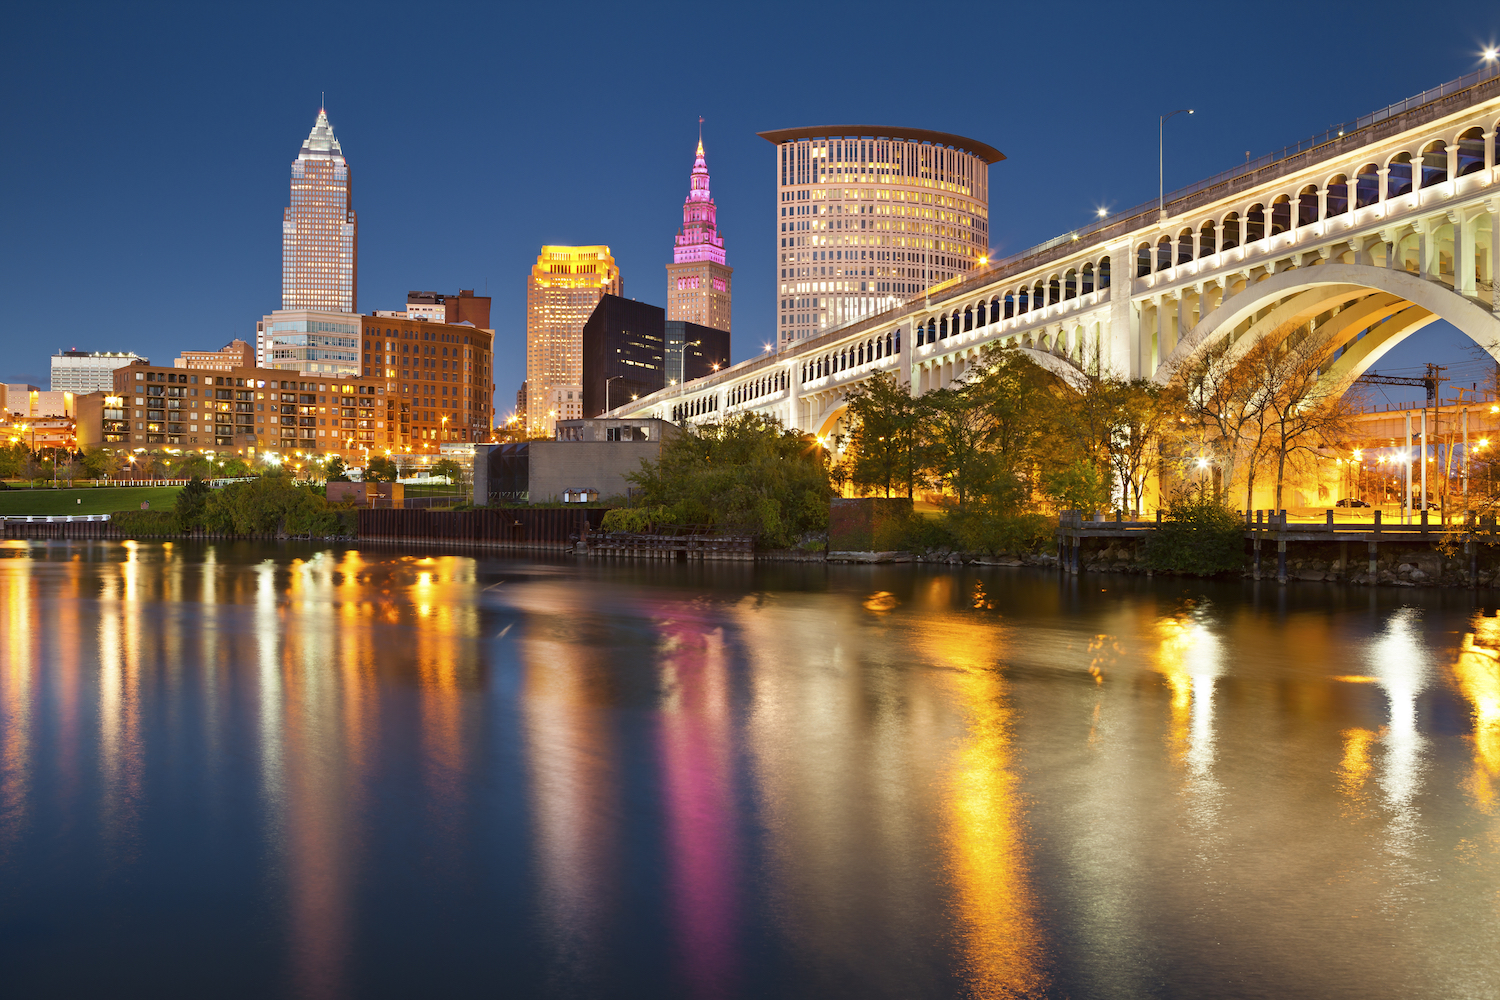 Cleveland. Image of Cleveland downtown at twilight blue hour